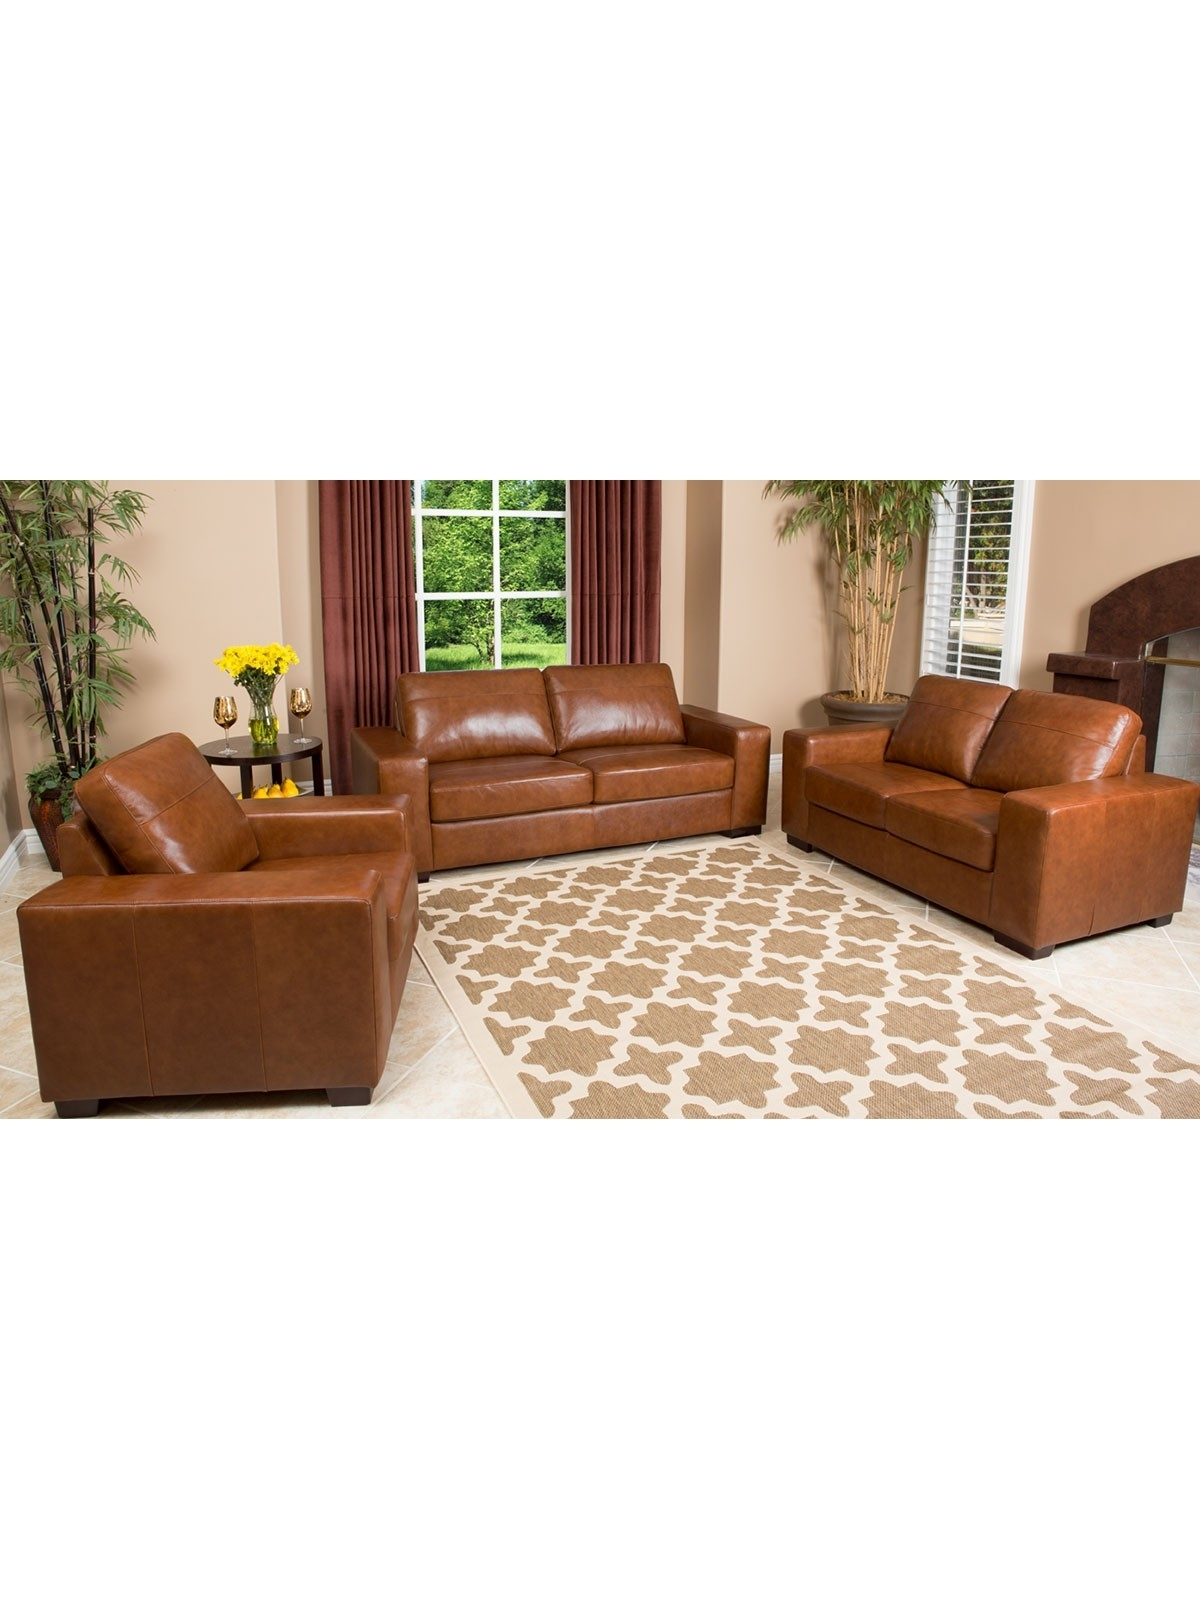 camel colored leather sofas how to clean oil stains from fabric sofa 10 best collection of sectional